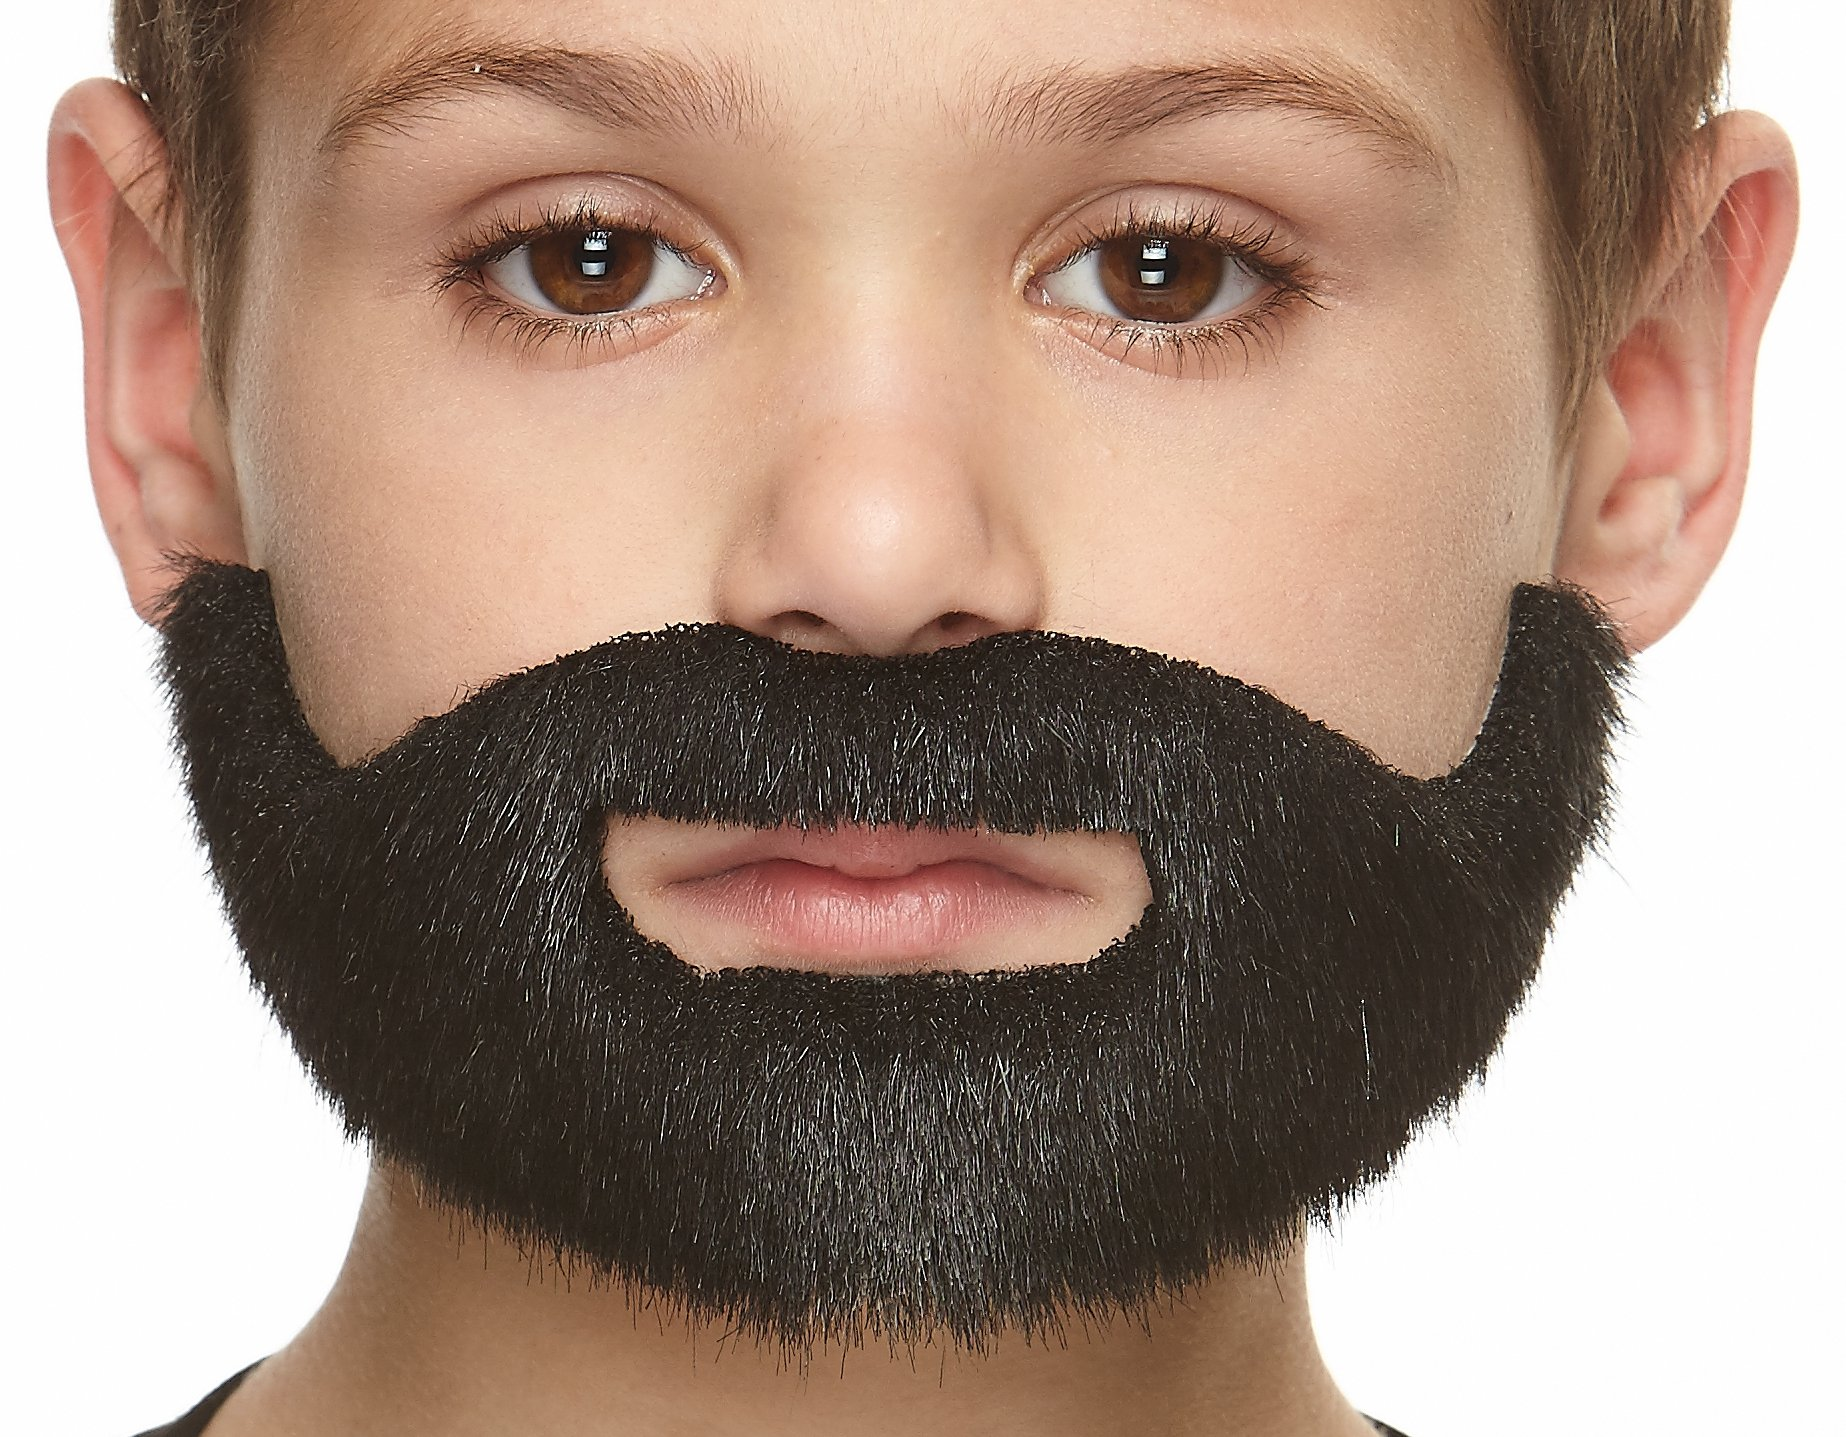 Mustaches Self Adhesive, Novelty, Fake, Small, Short Boxed Beard, Black Lustrous Color